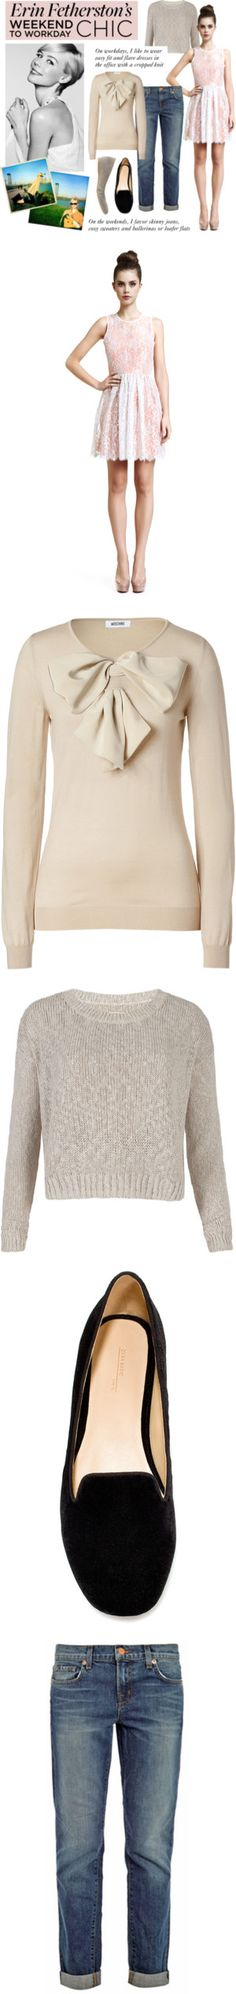 """Erin Fetherston: Weekend to Workday Chic"" by polyvore-editorial on Polyvore"